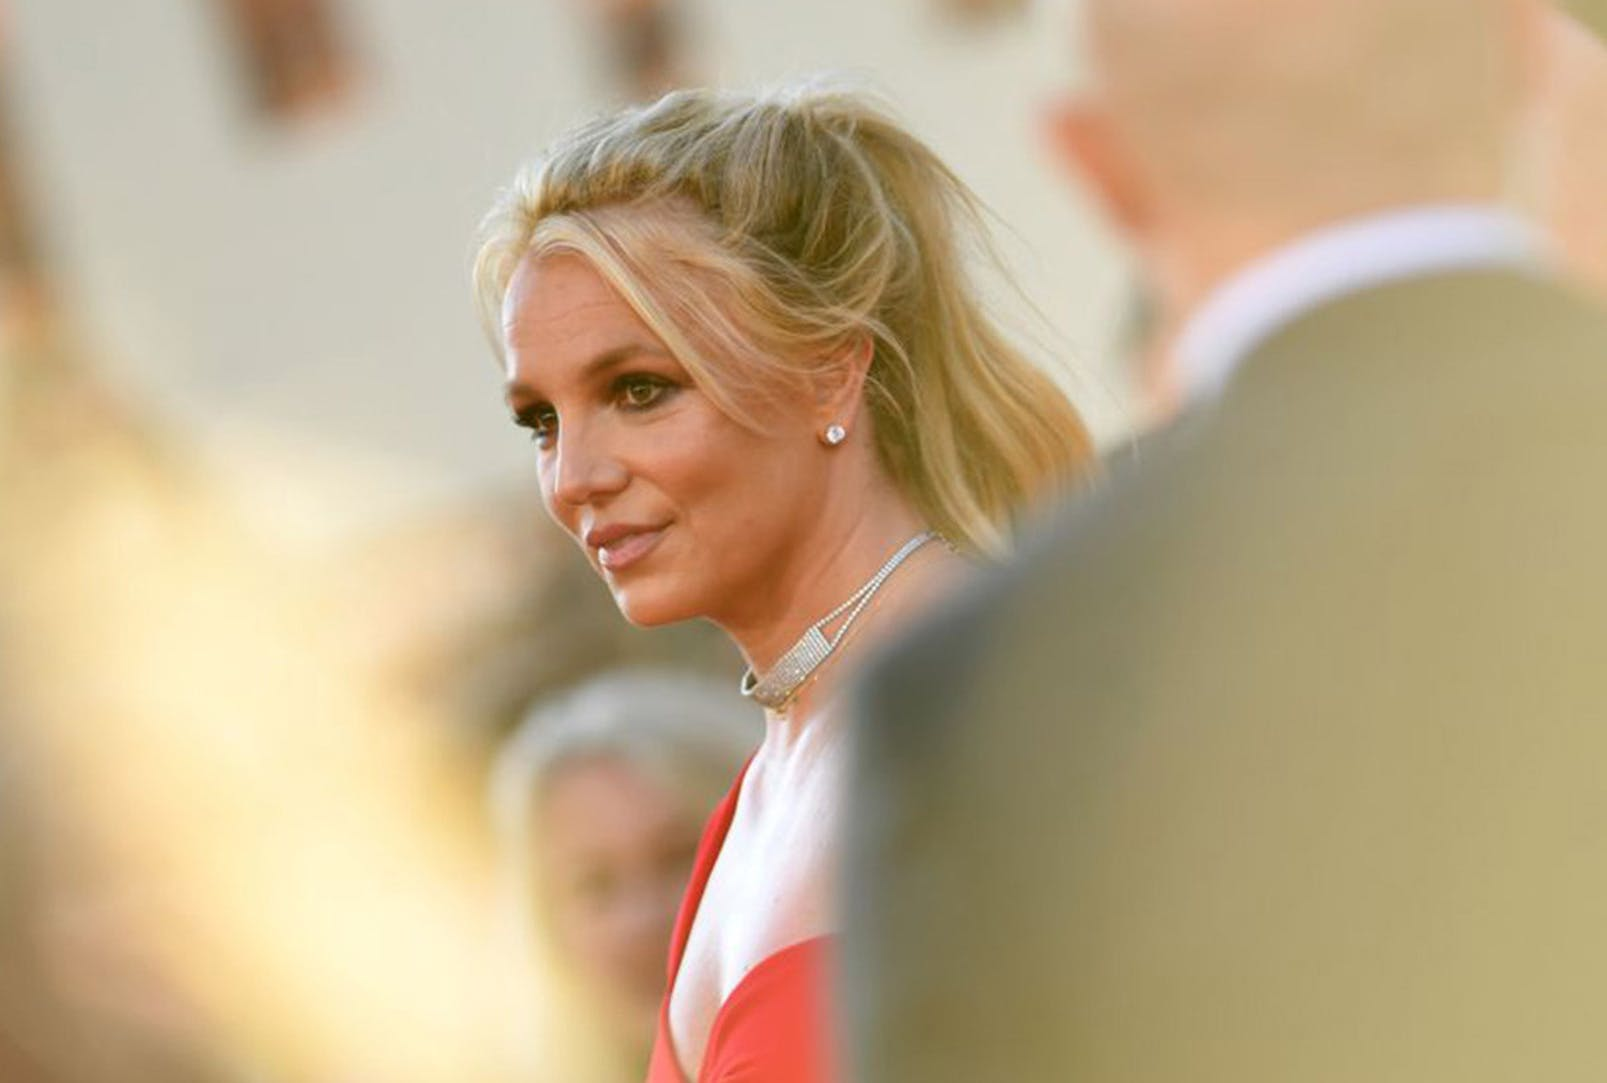 Britney loses bid to stop her father's control, as 12-year ordeal continues - A look at the conservatorship timeline